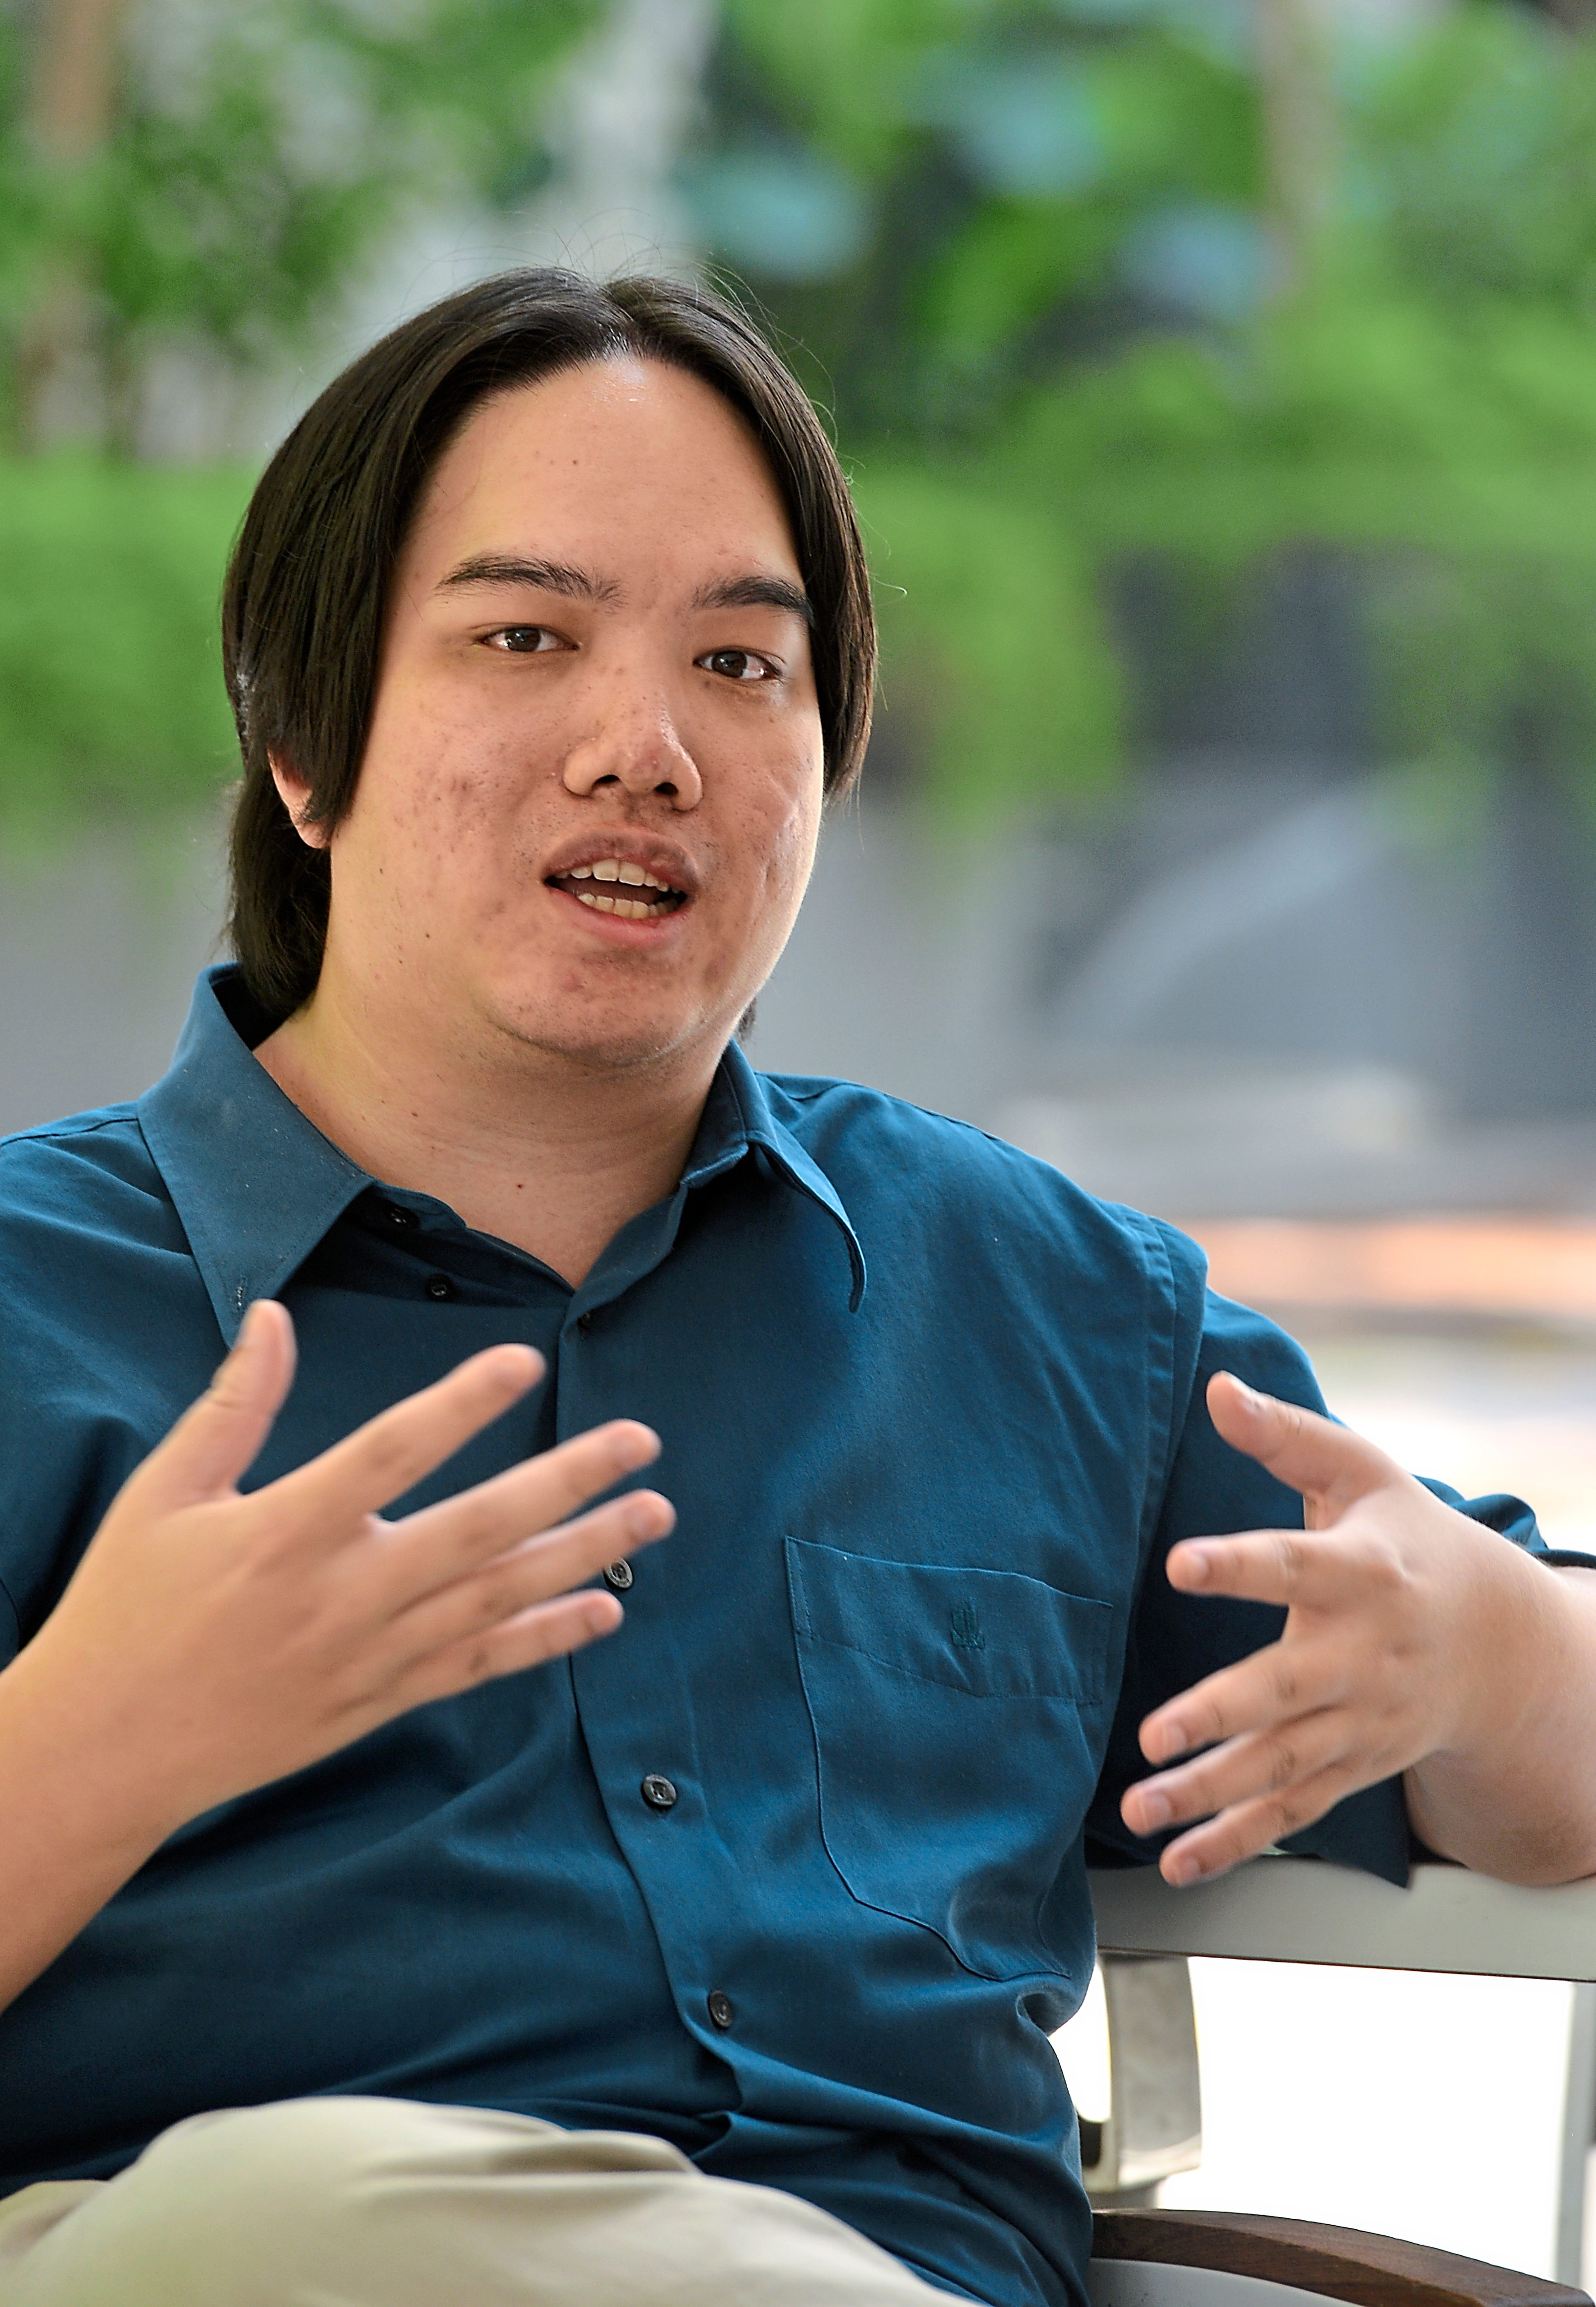 Lew Ke Pang, founder of Project 626